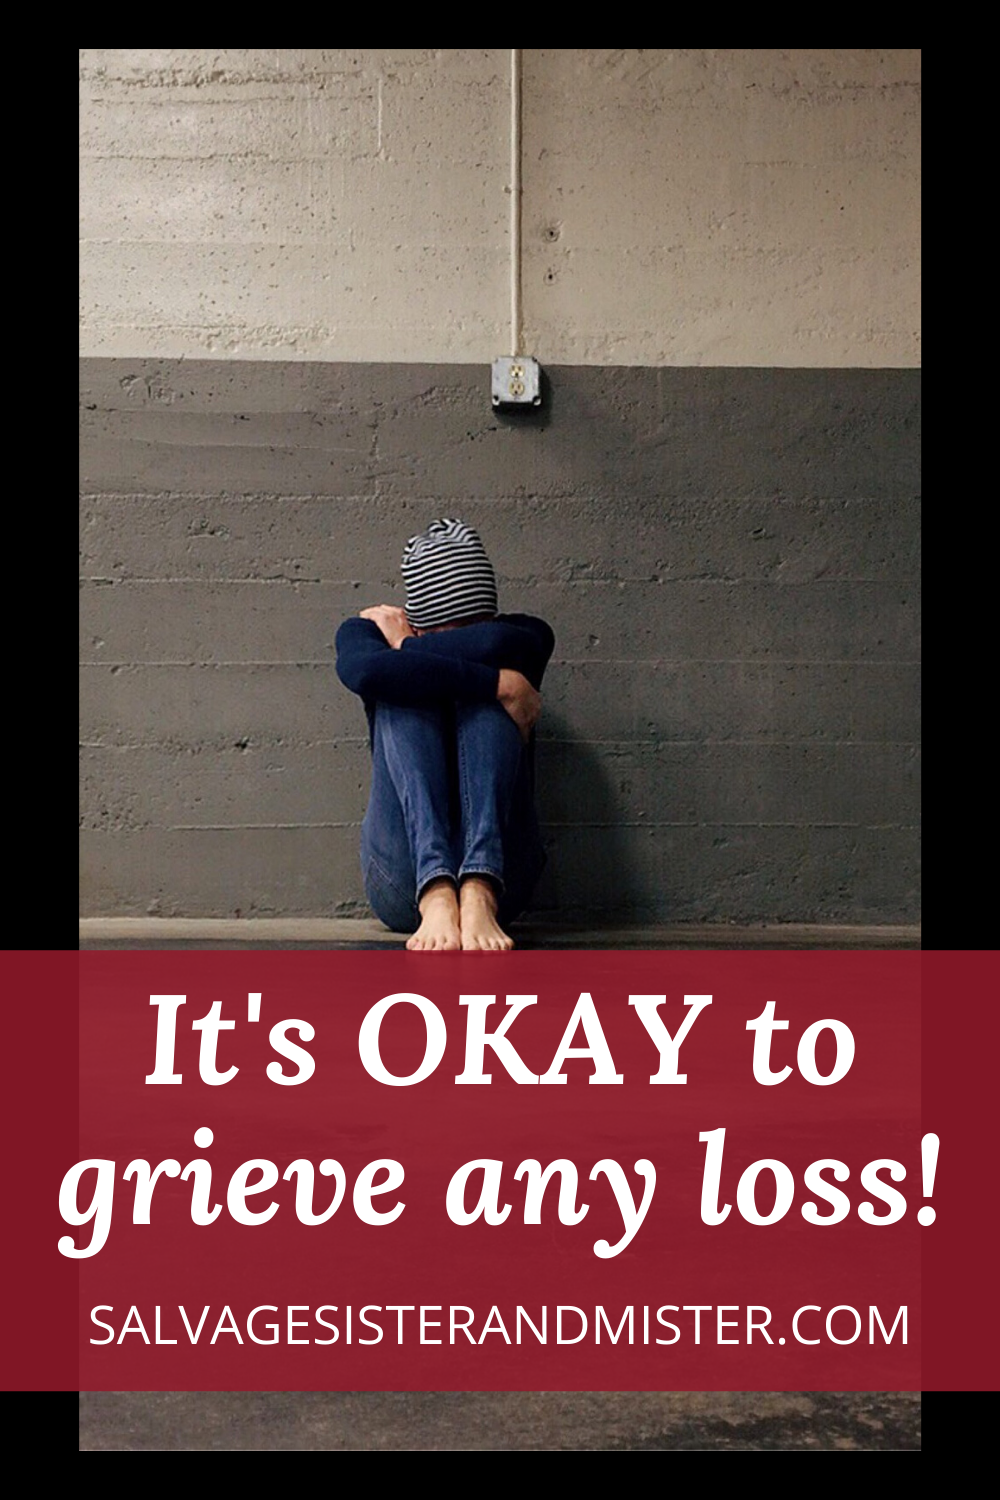 No matter what you are going through, it's okay to grieve any loss. No matter if it's a graduation, attending a baby shower, a loss of a trip, not seeing your loved ones, or whatever loss you are going through right now. It's time to grieve it. Find a trusted person and take the time to express yourself. More tips of grieving and then living is found on salvagesisterandmister.com #salvagemoments